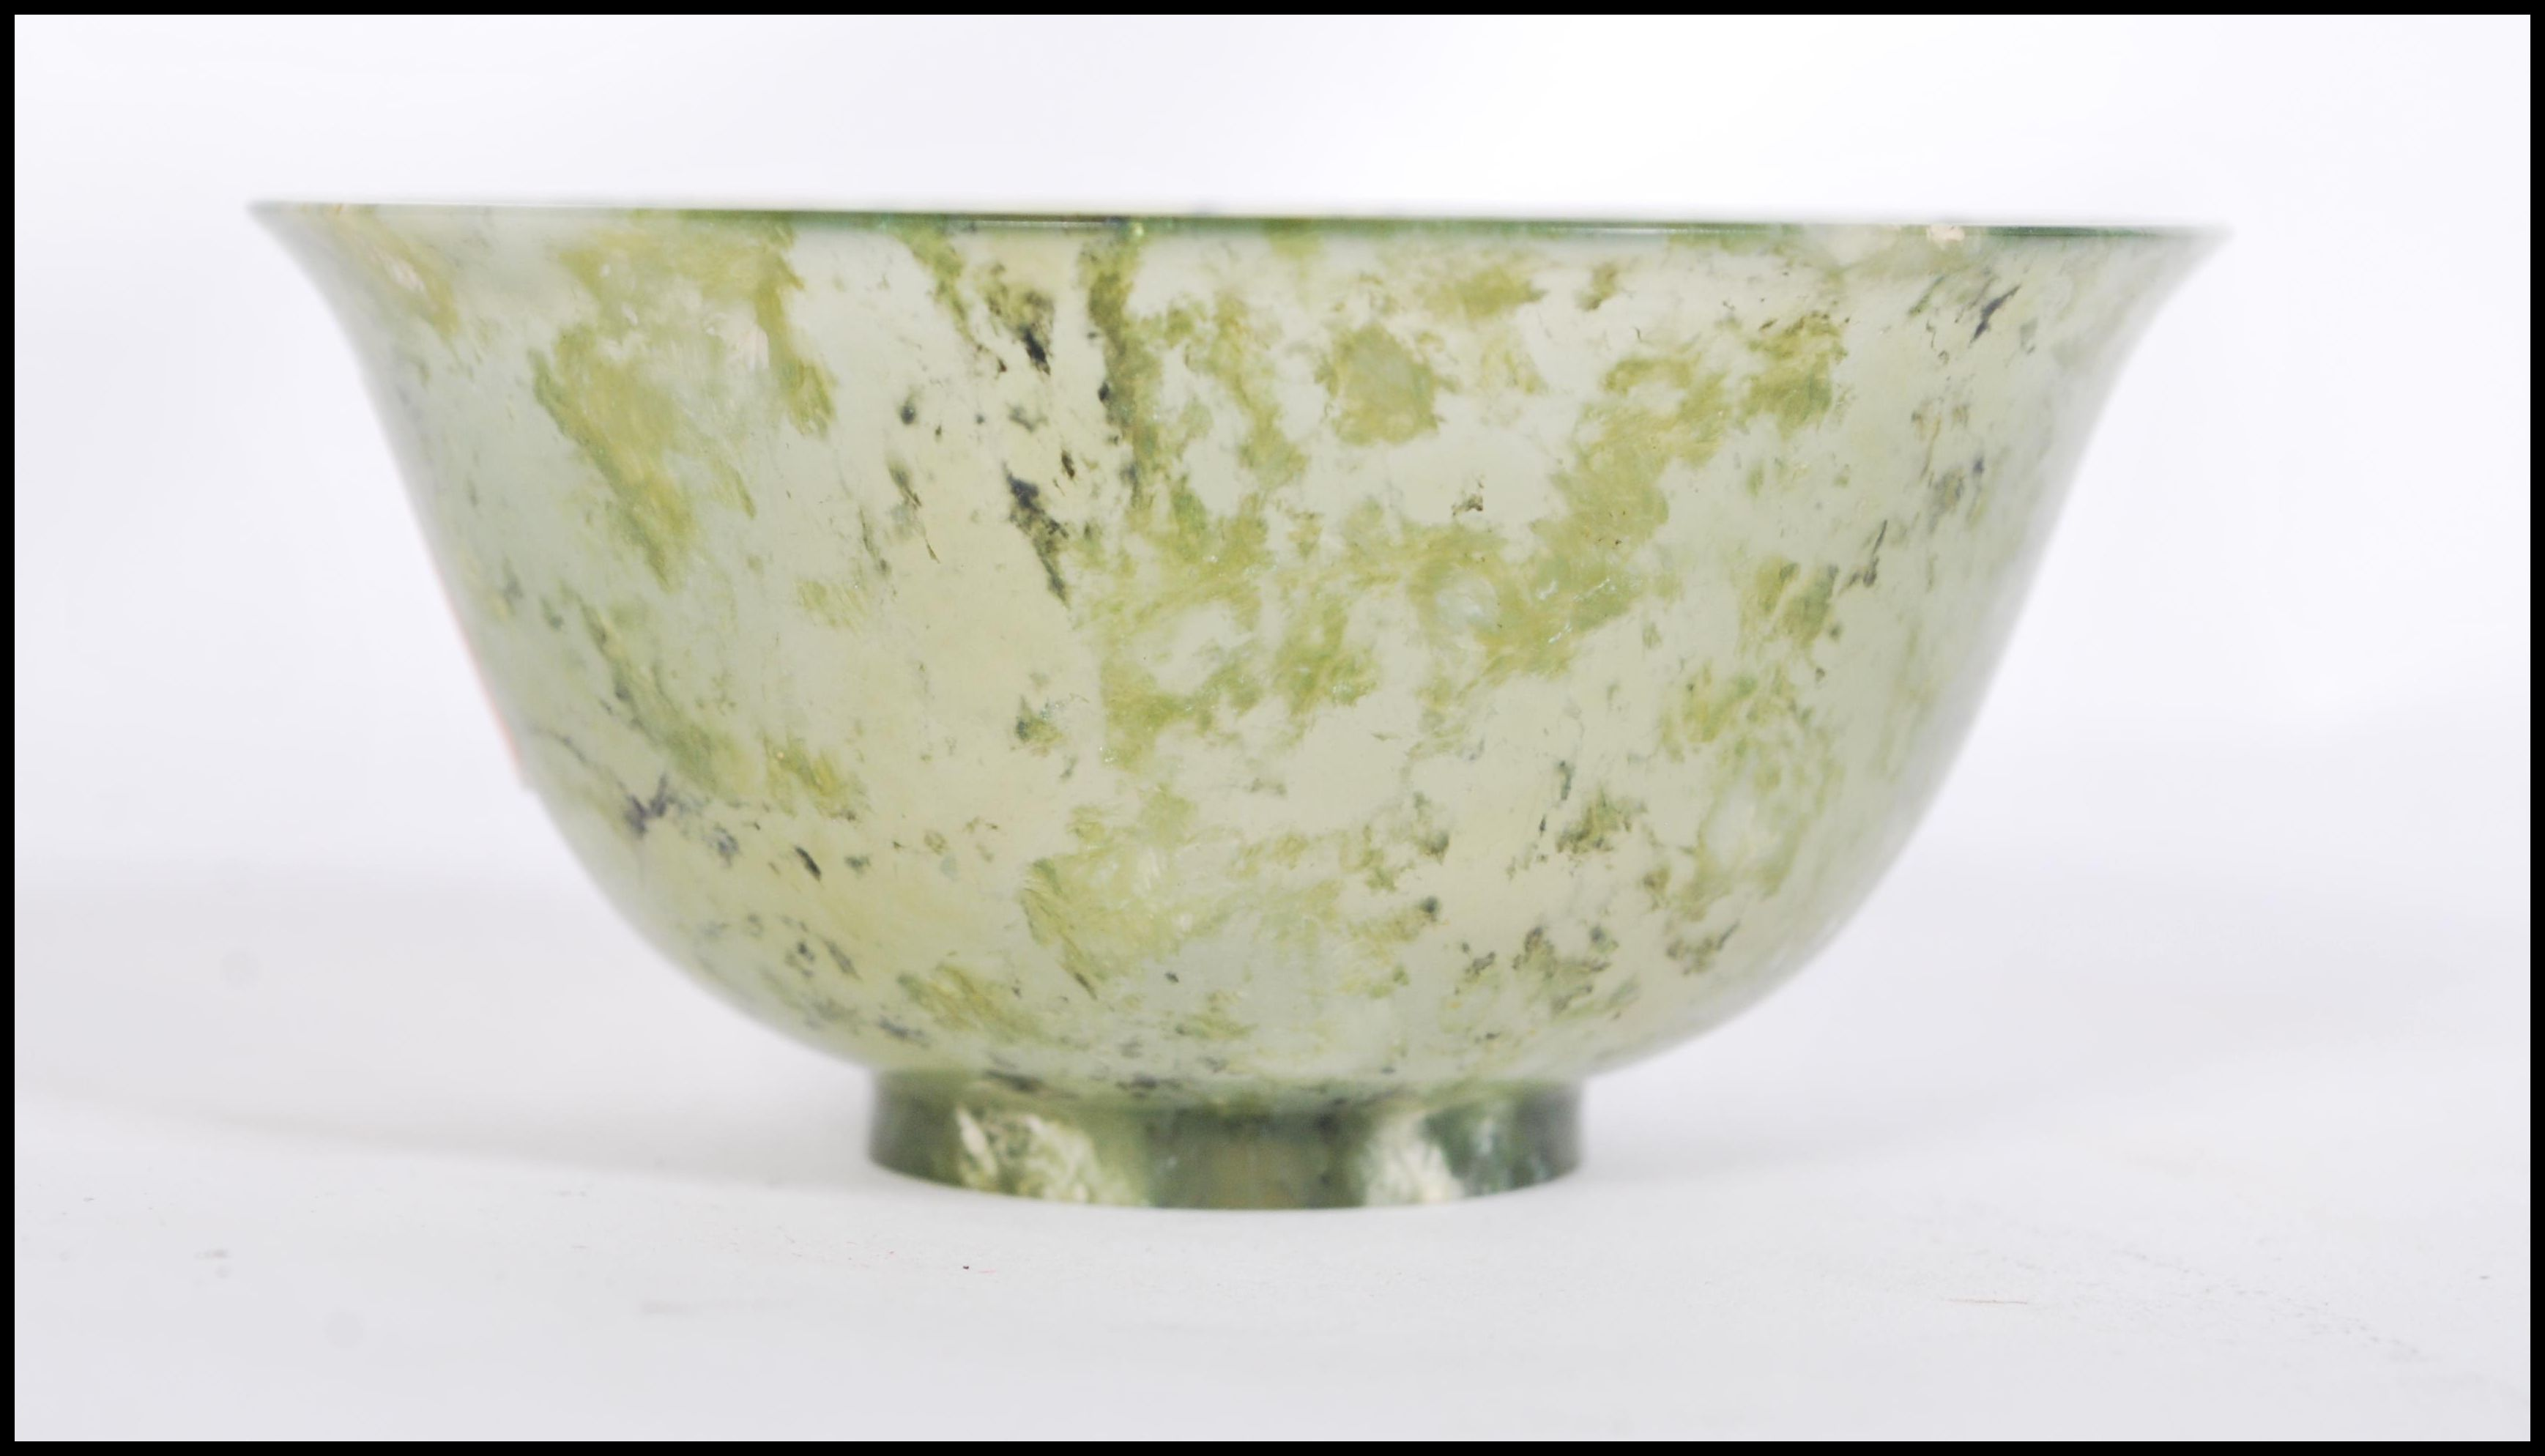 Lot 36 - A Chinese jade tea / finger bowl / libation cup of typical form having a mottled and clear